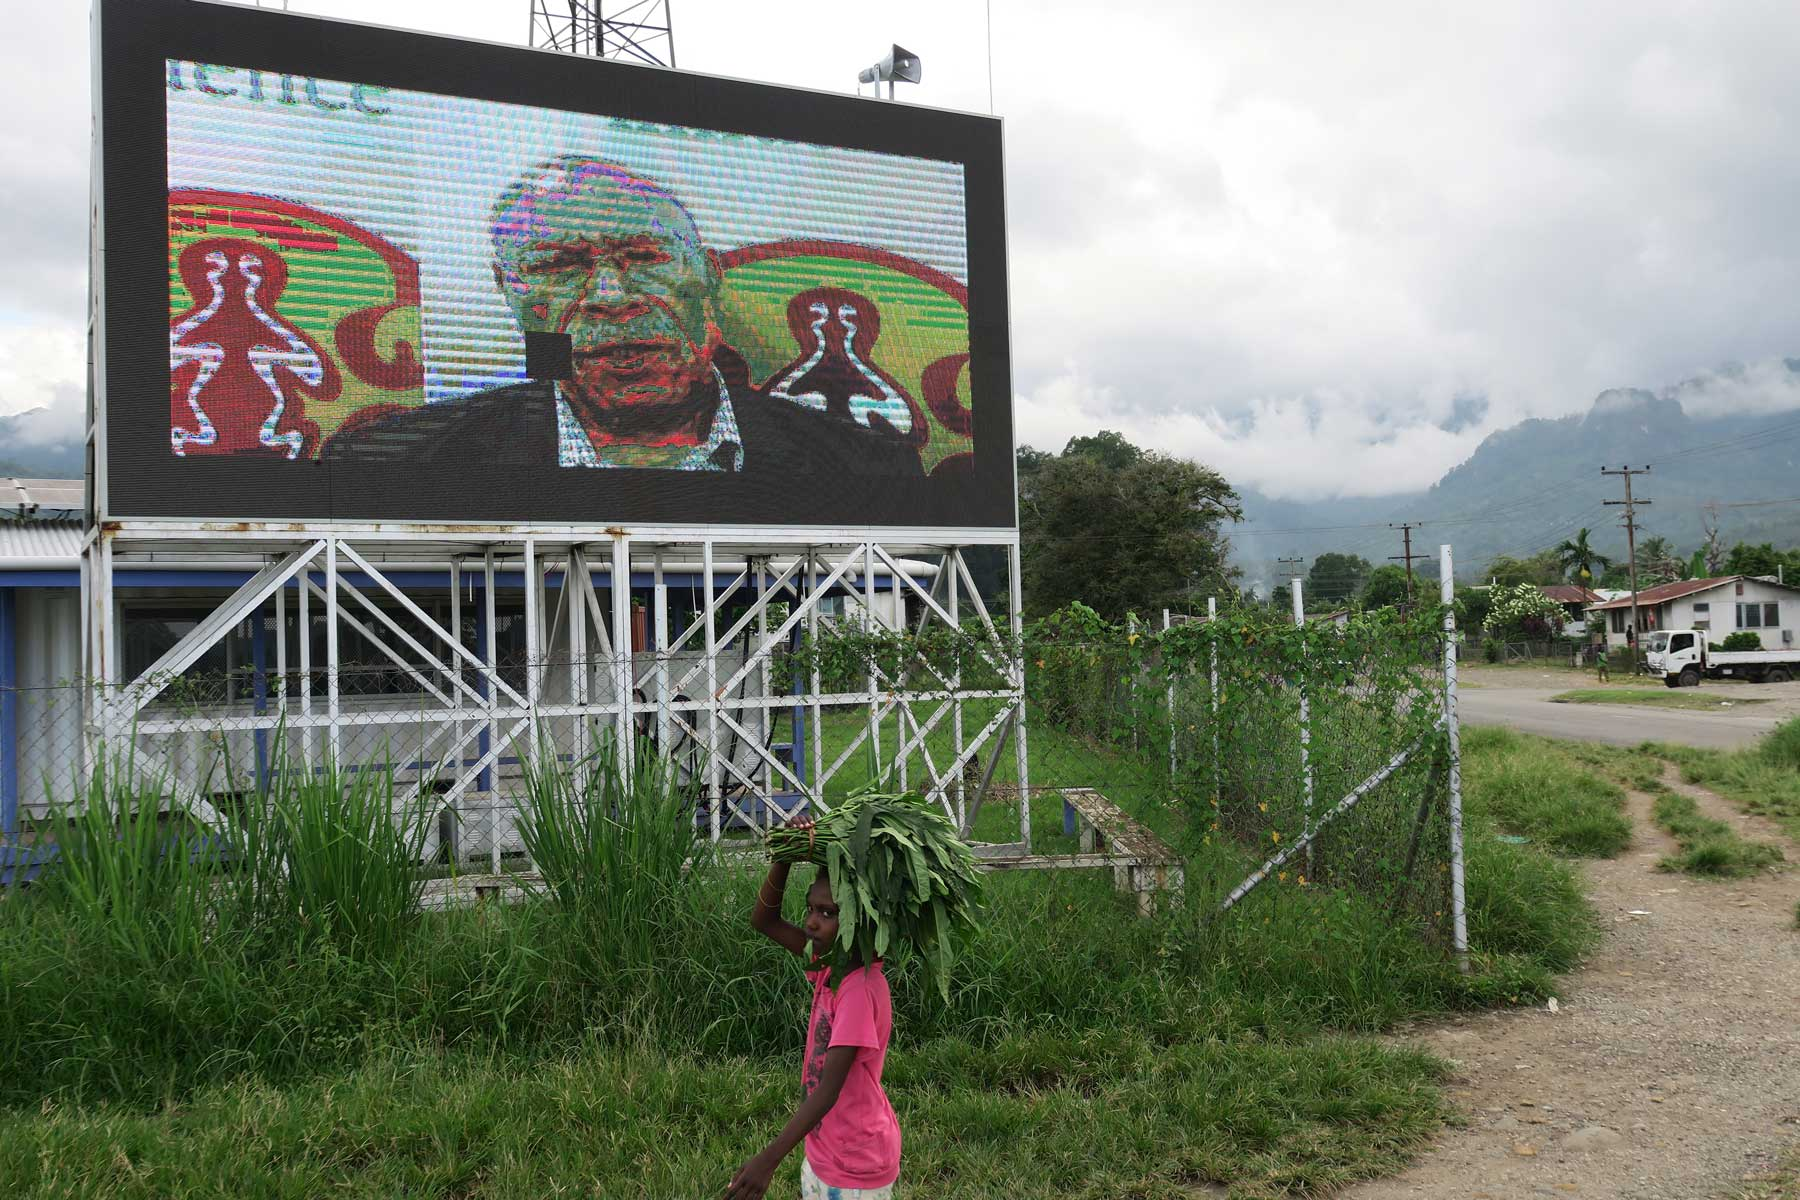 A television screen outside the market in Arawa is used to communicate updates on the referendum process